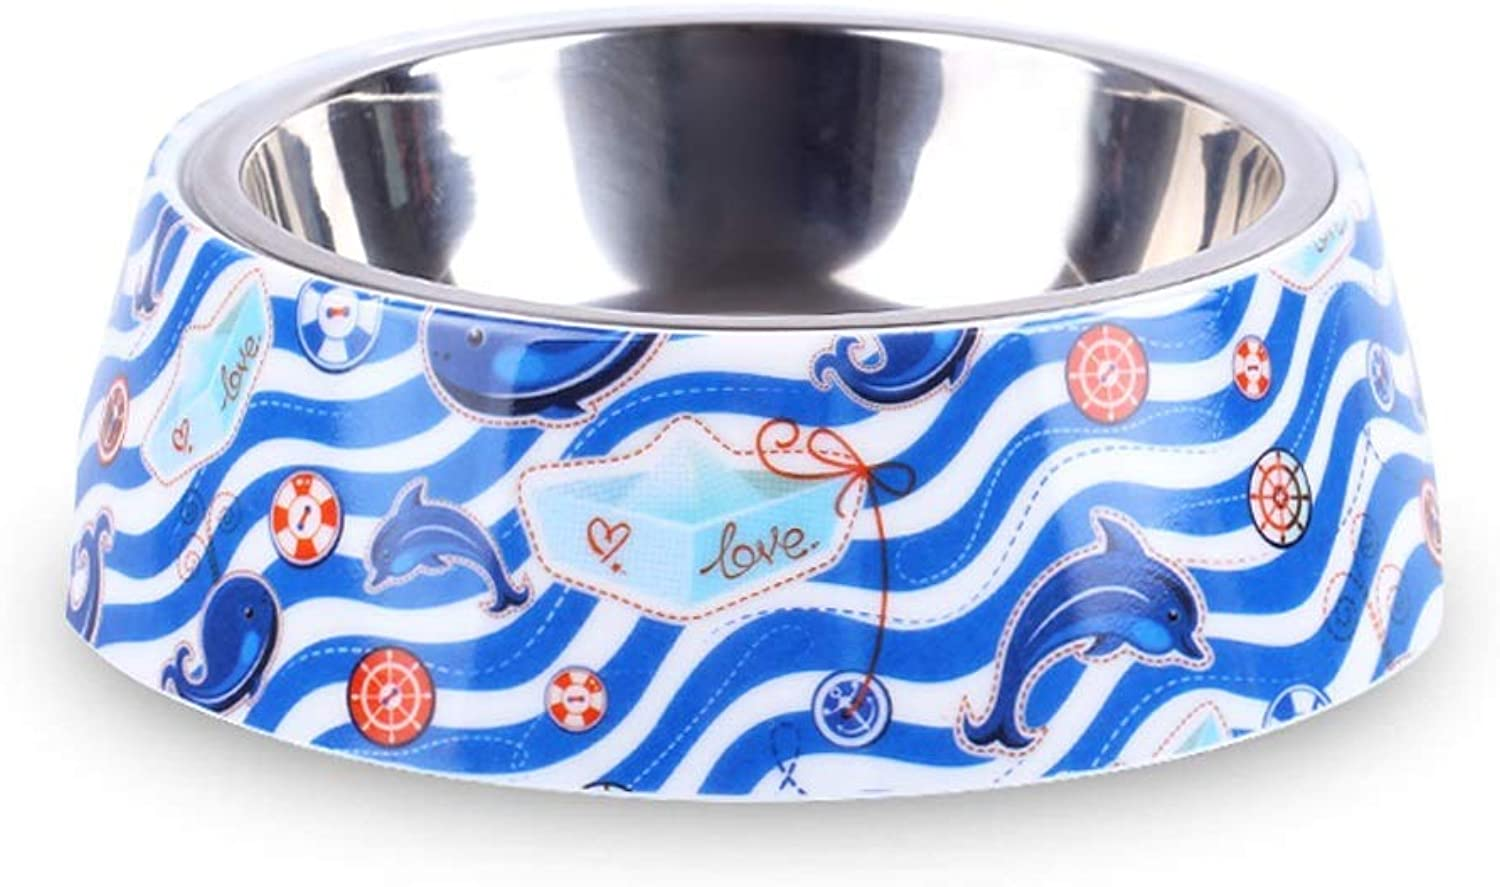 HVTKL Dog Food Bowl Stainless Steel NonSlip Double Layer Single Bowl Cat Bowl Cute Dolphin Pet Supplies (Size   L)